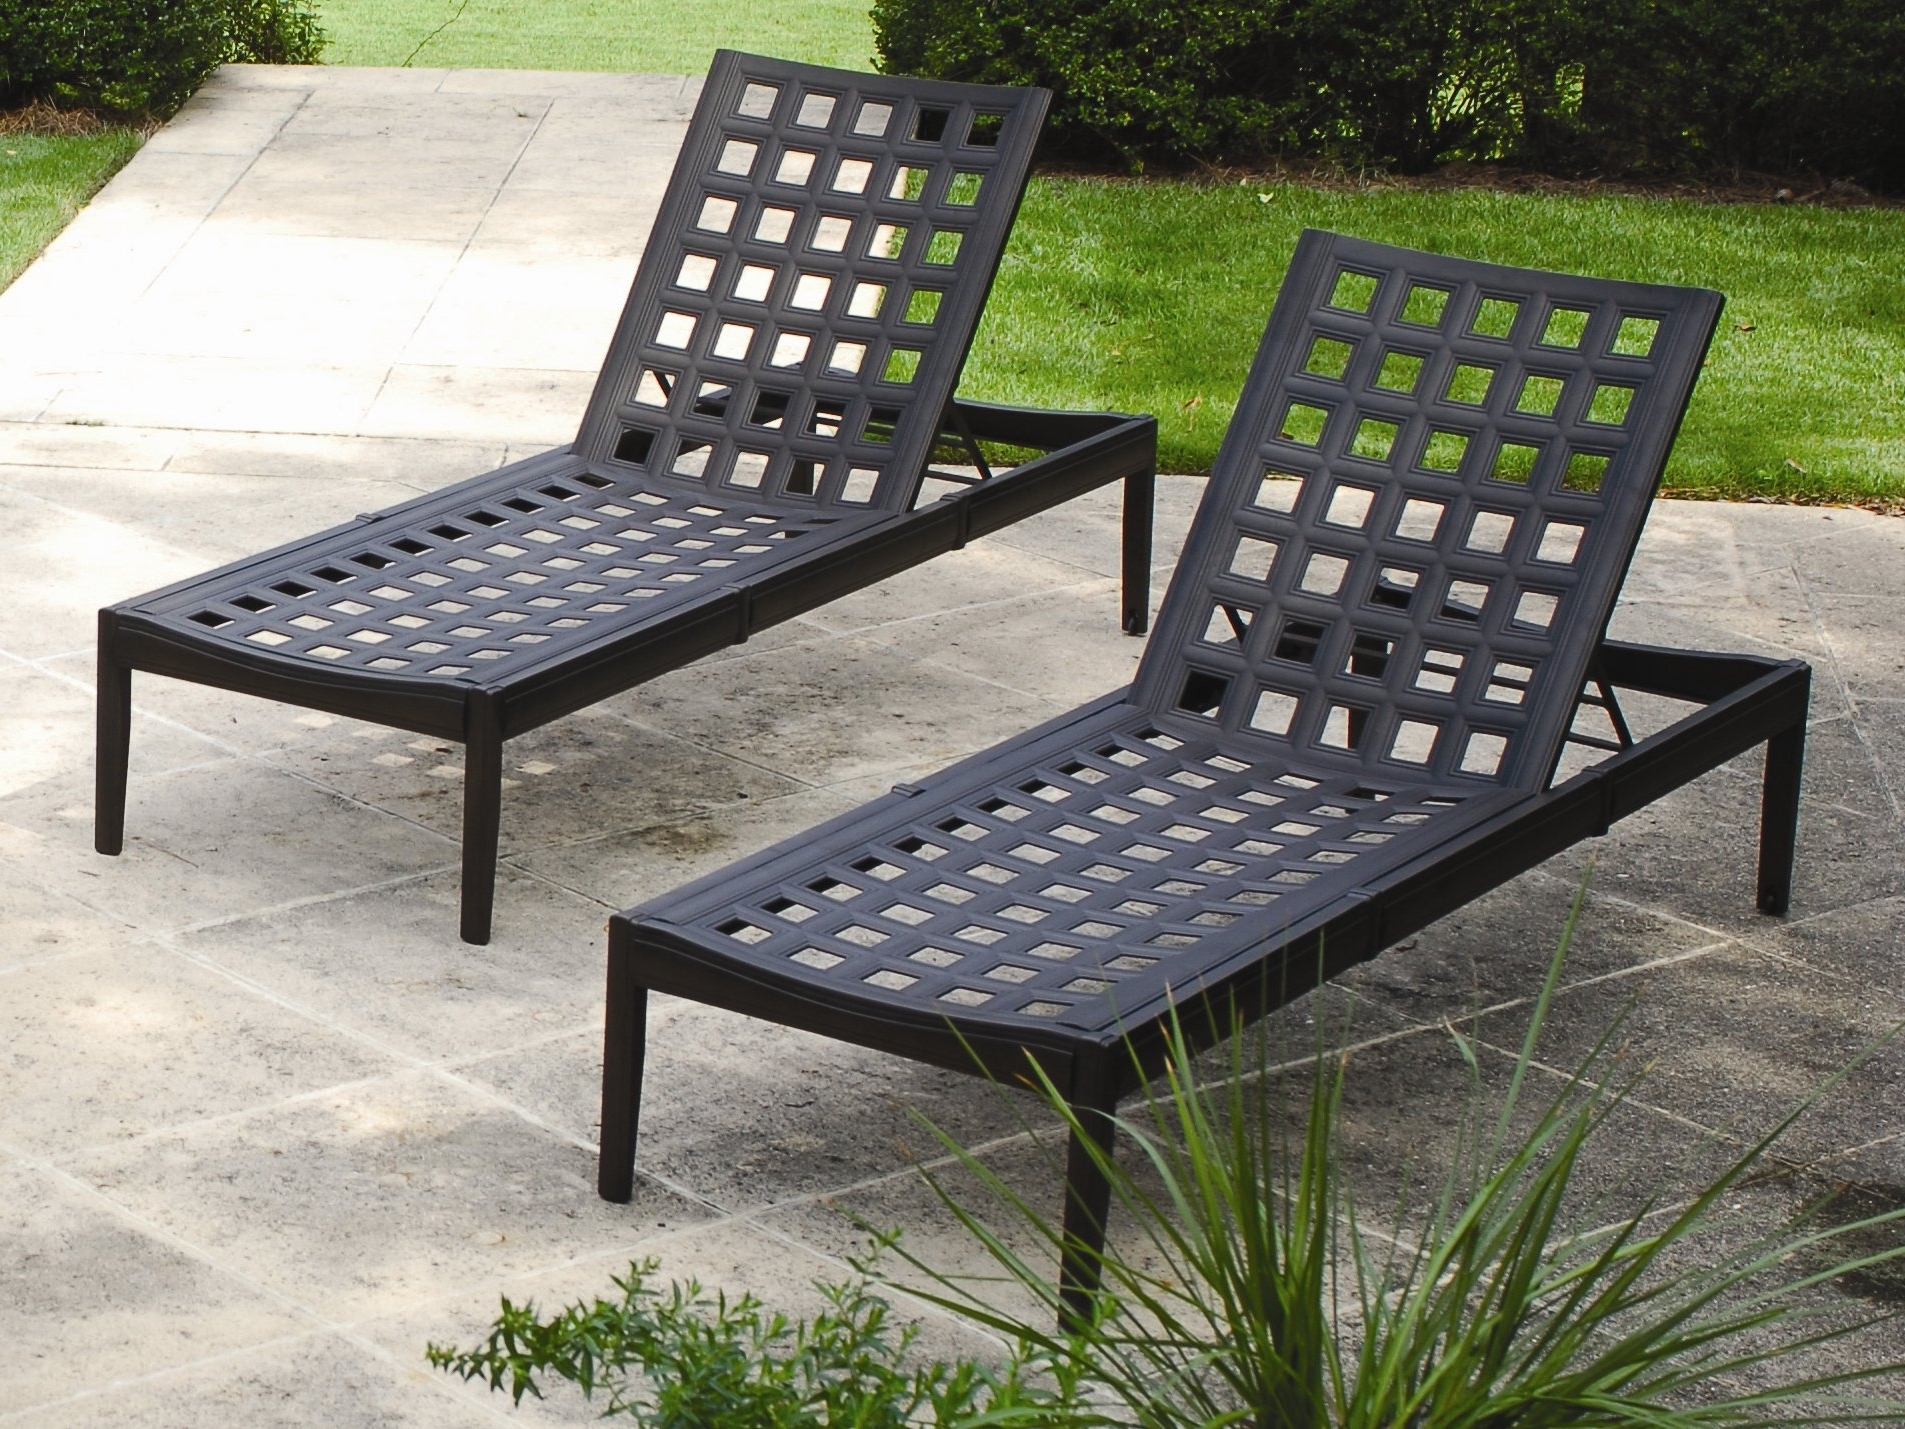 Outdoor Cast Aluminum Chaise Lounge Chairs For Best And Newest Cast Aluminum Chaise Lounge Chairs • Lounge Chairs Ideas (View 8 of 15)